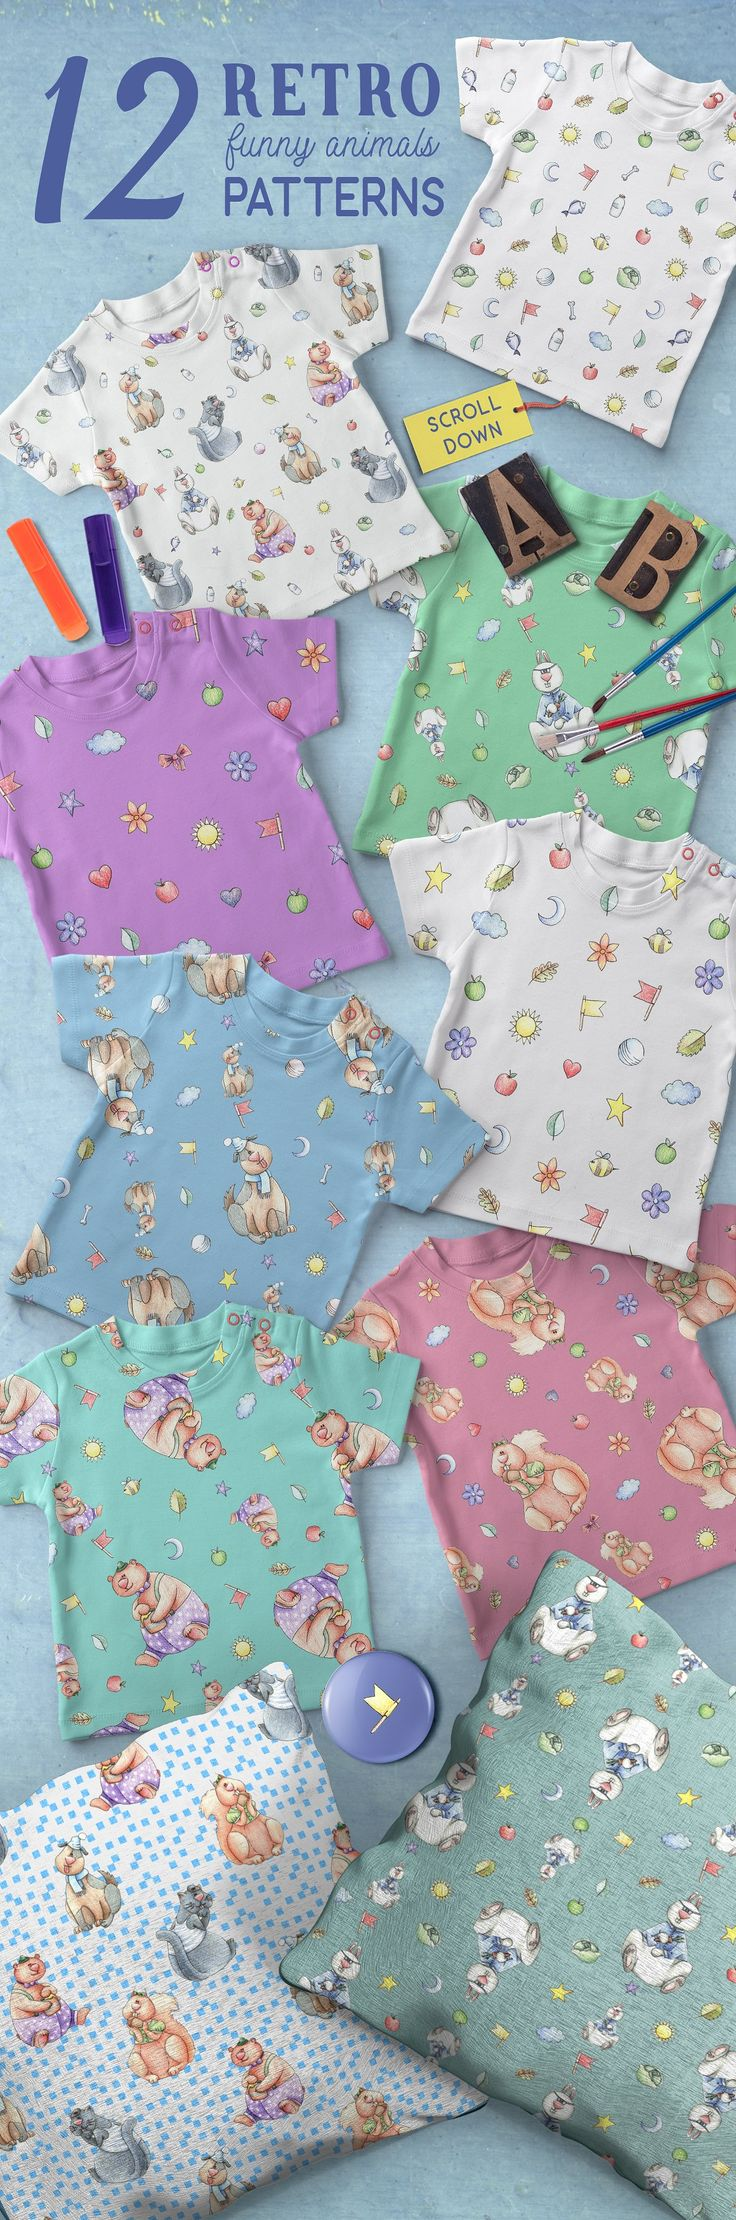 Funny Patterns for Kids ans Babies by Anna on @creativemarket